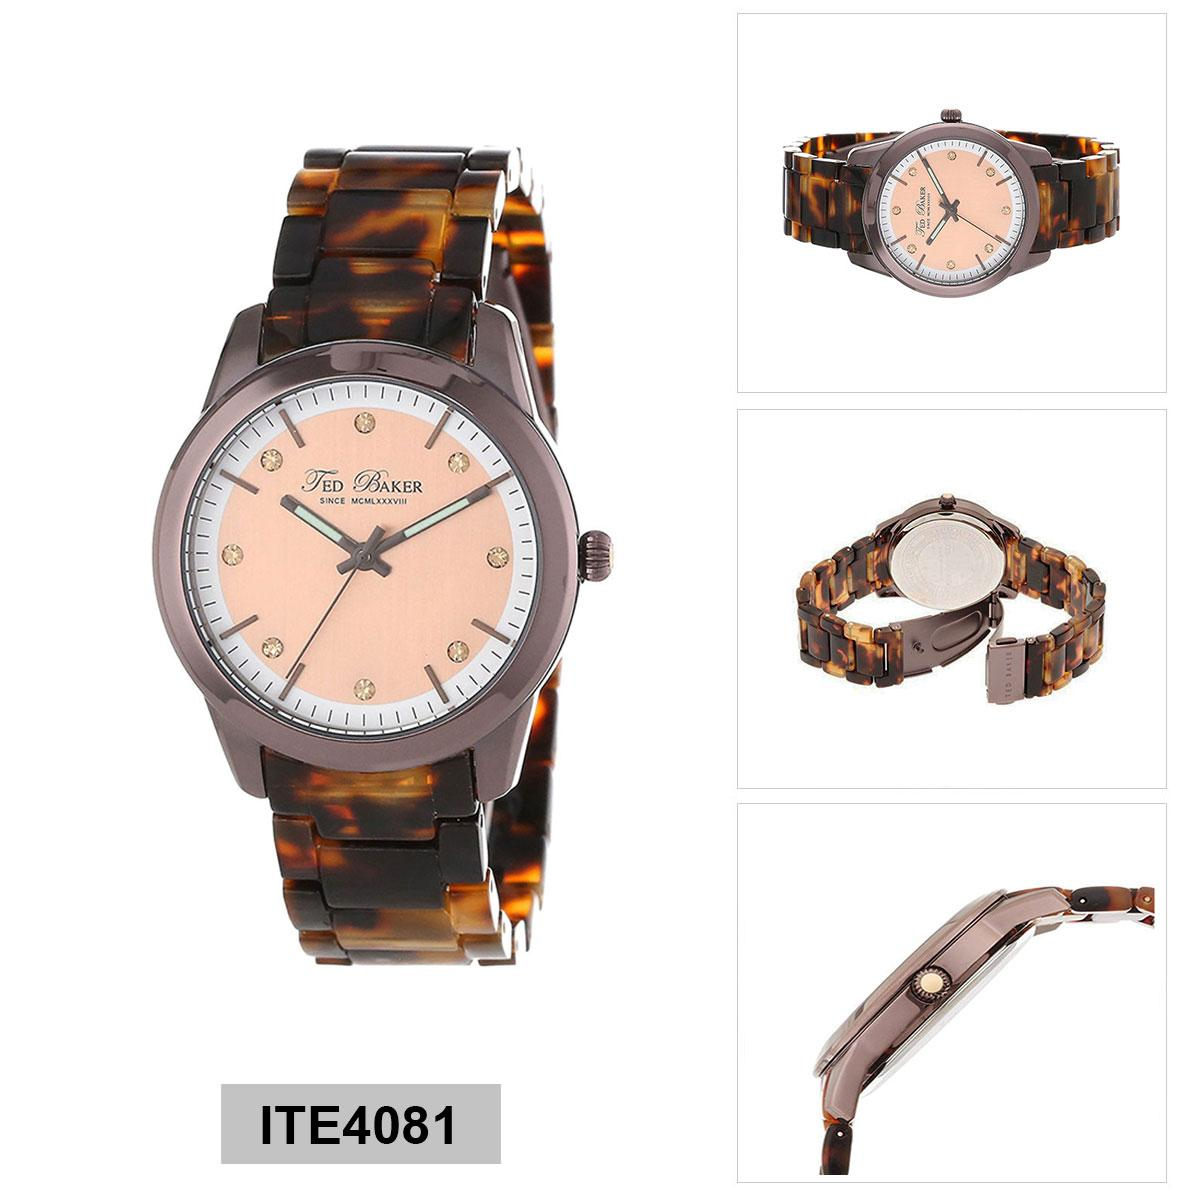 Ted Baker Watch Multicolored Stainless Steel Case Plastic Strap Ladies Ite4081 Lower Price